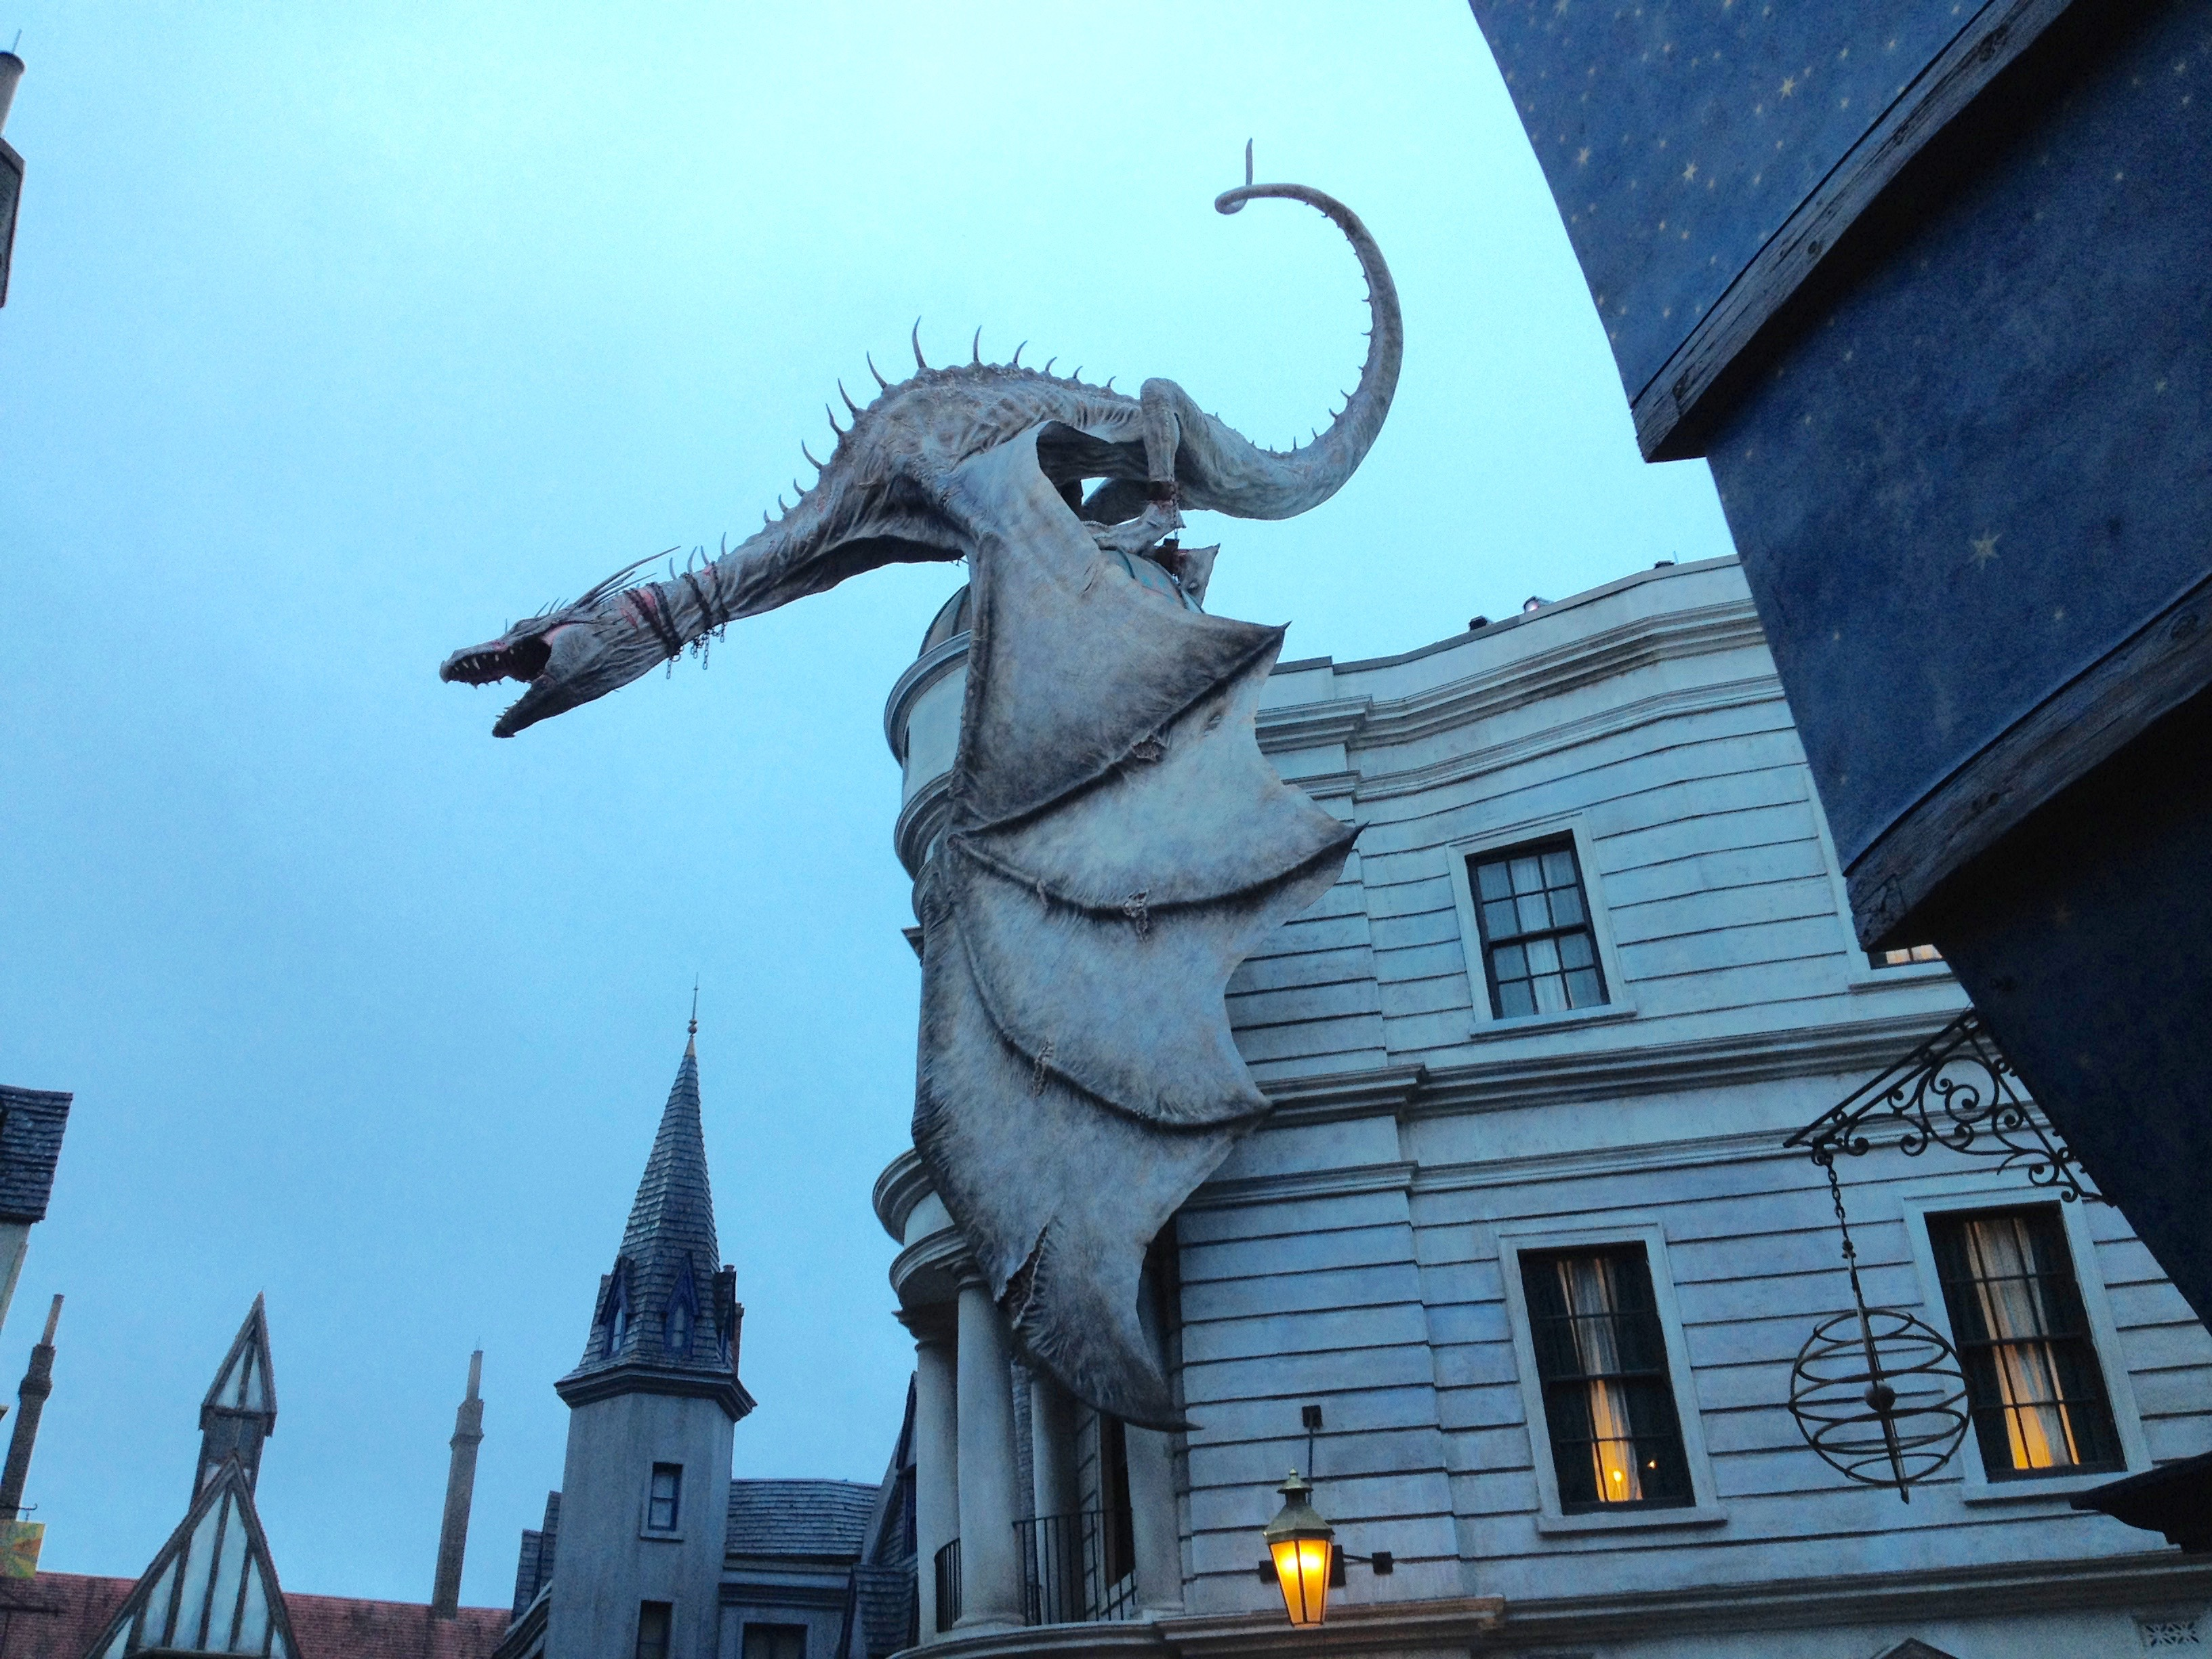 The wizarding world of harry potter harry potter wiki fandom diagon alley universal studios orlando only ccuart Gallery